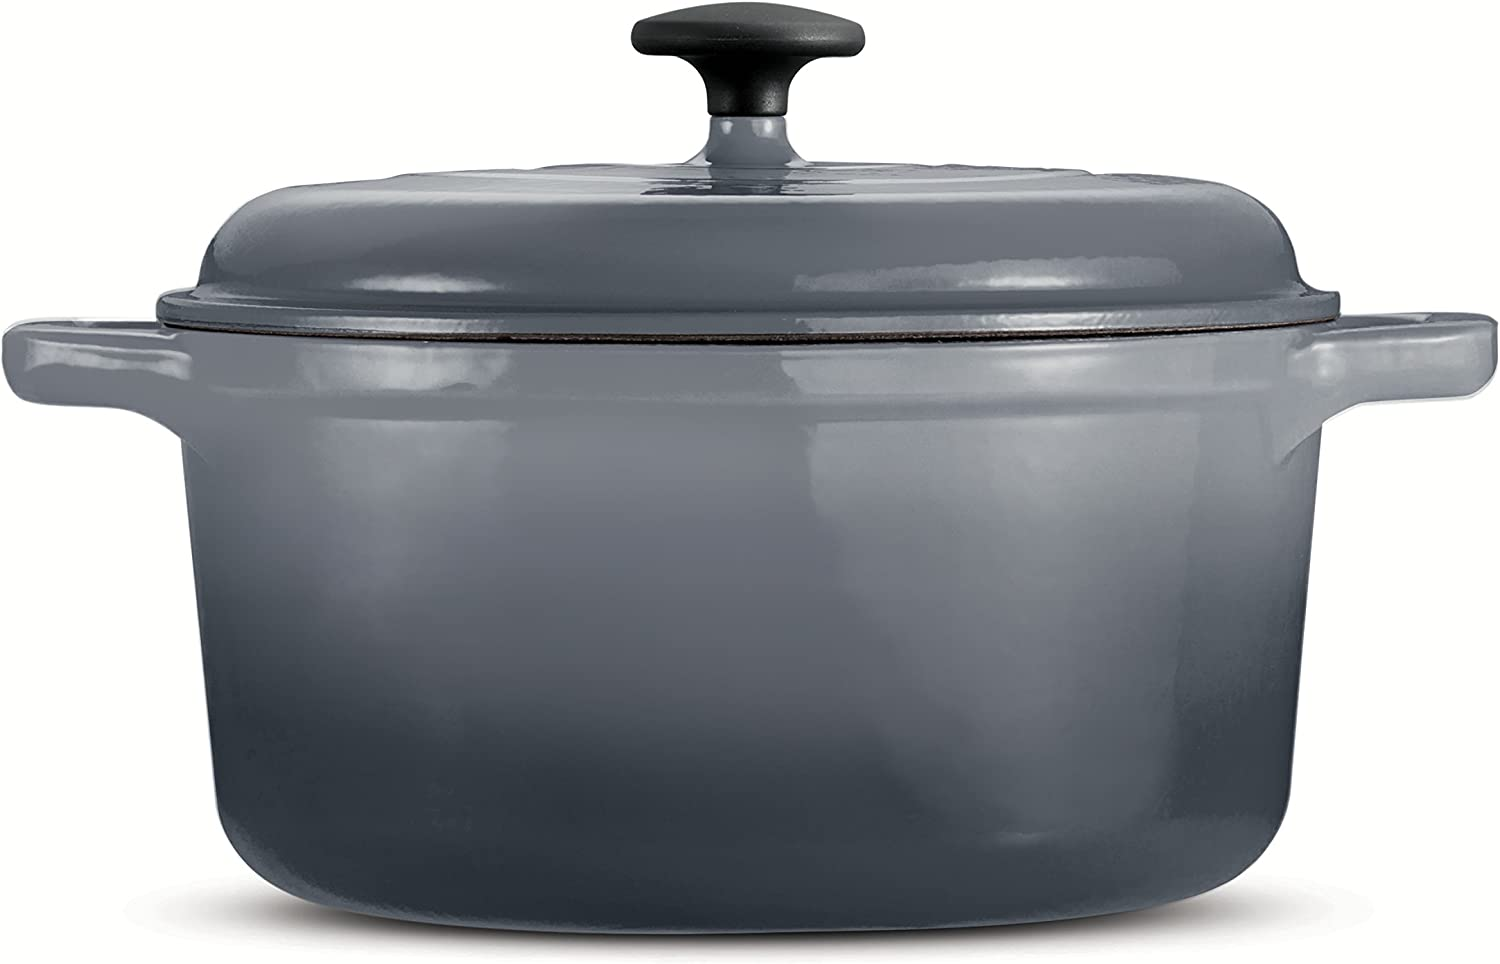 Tramontina 80131/632DS Style Enameled Cast Iron Round Dutch Oven, 6.5-Quart, Gradated Gray